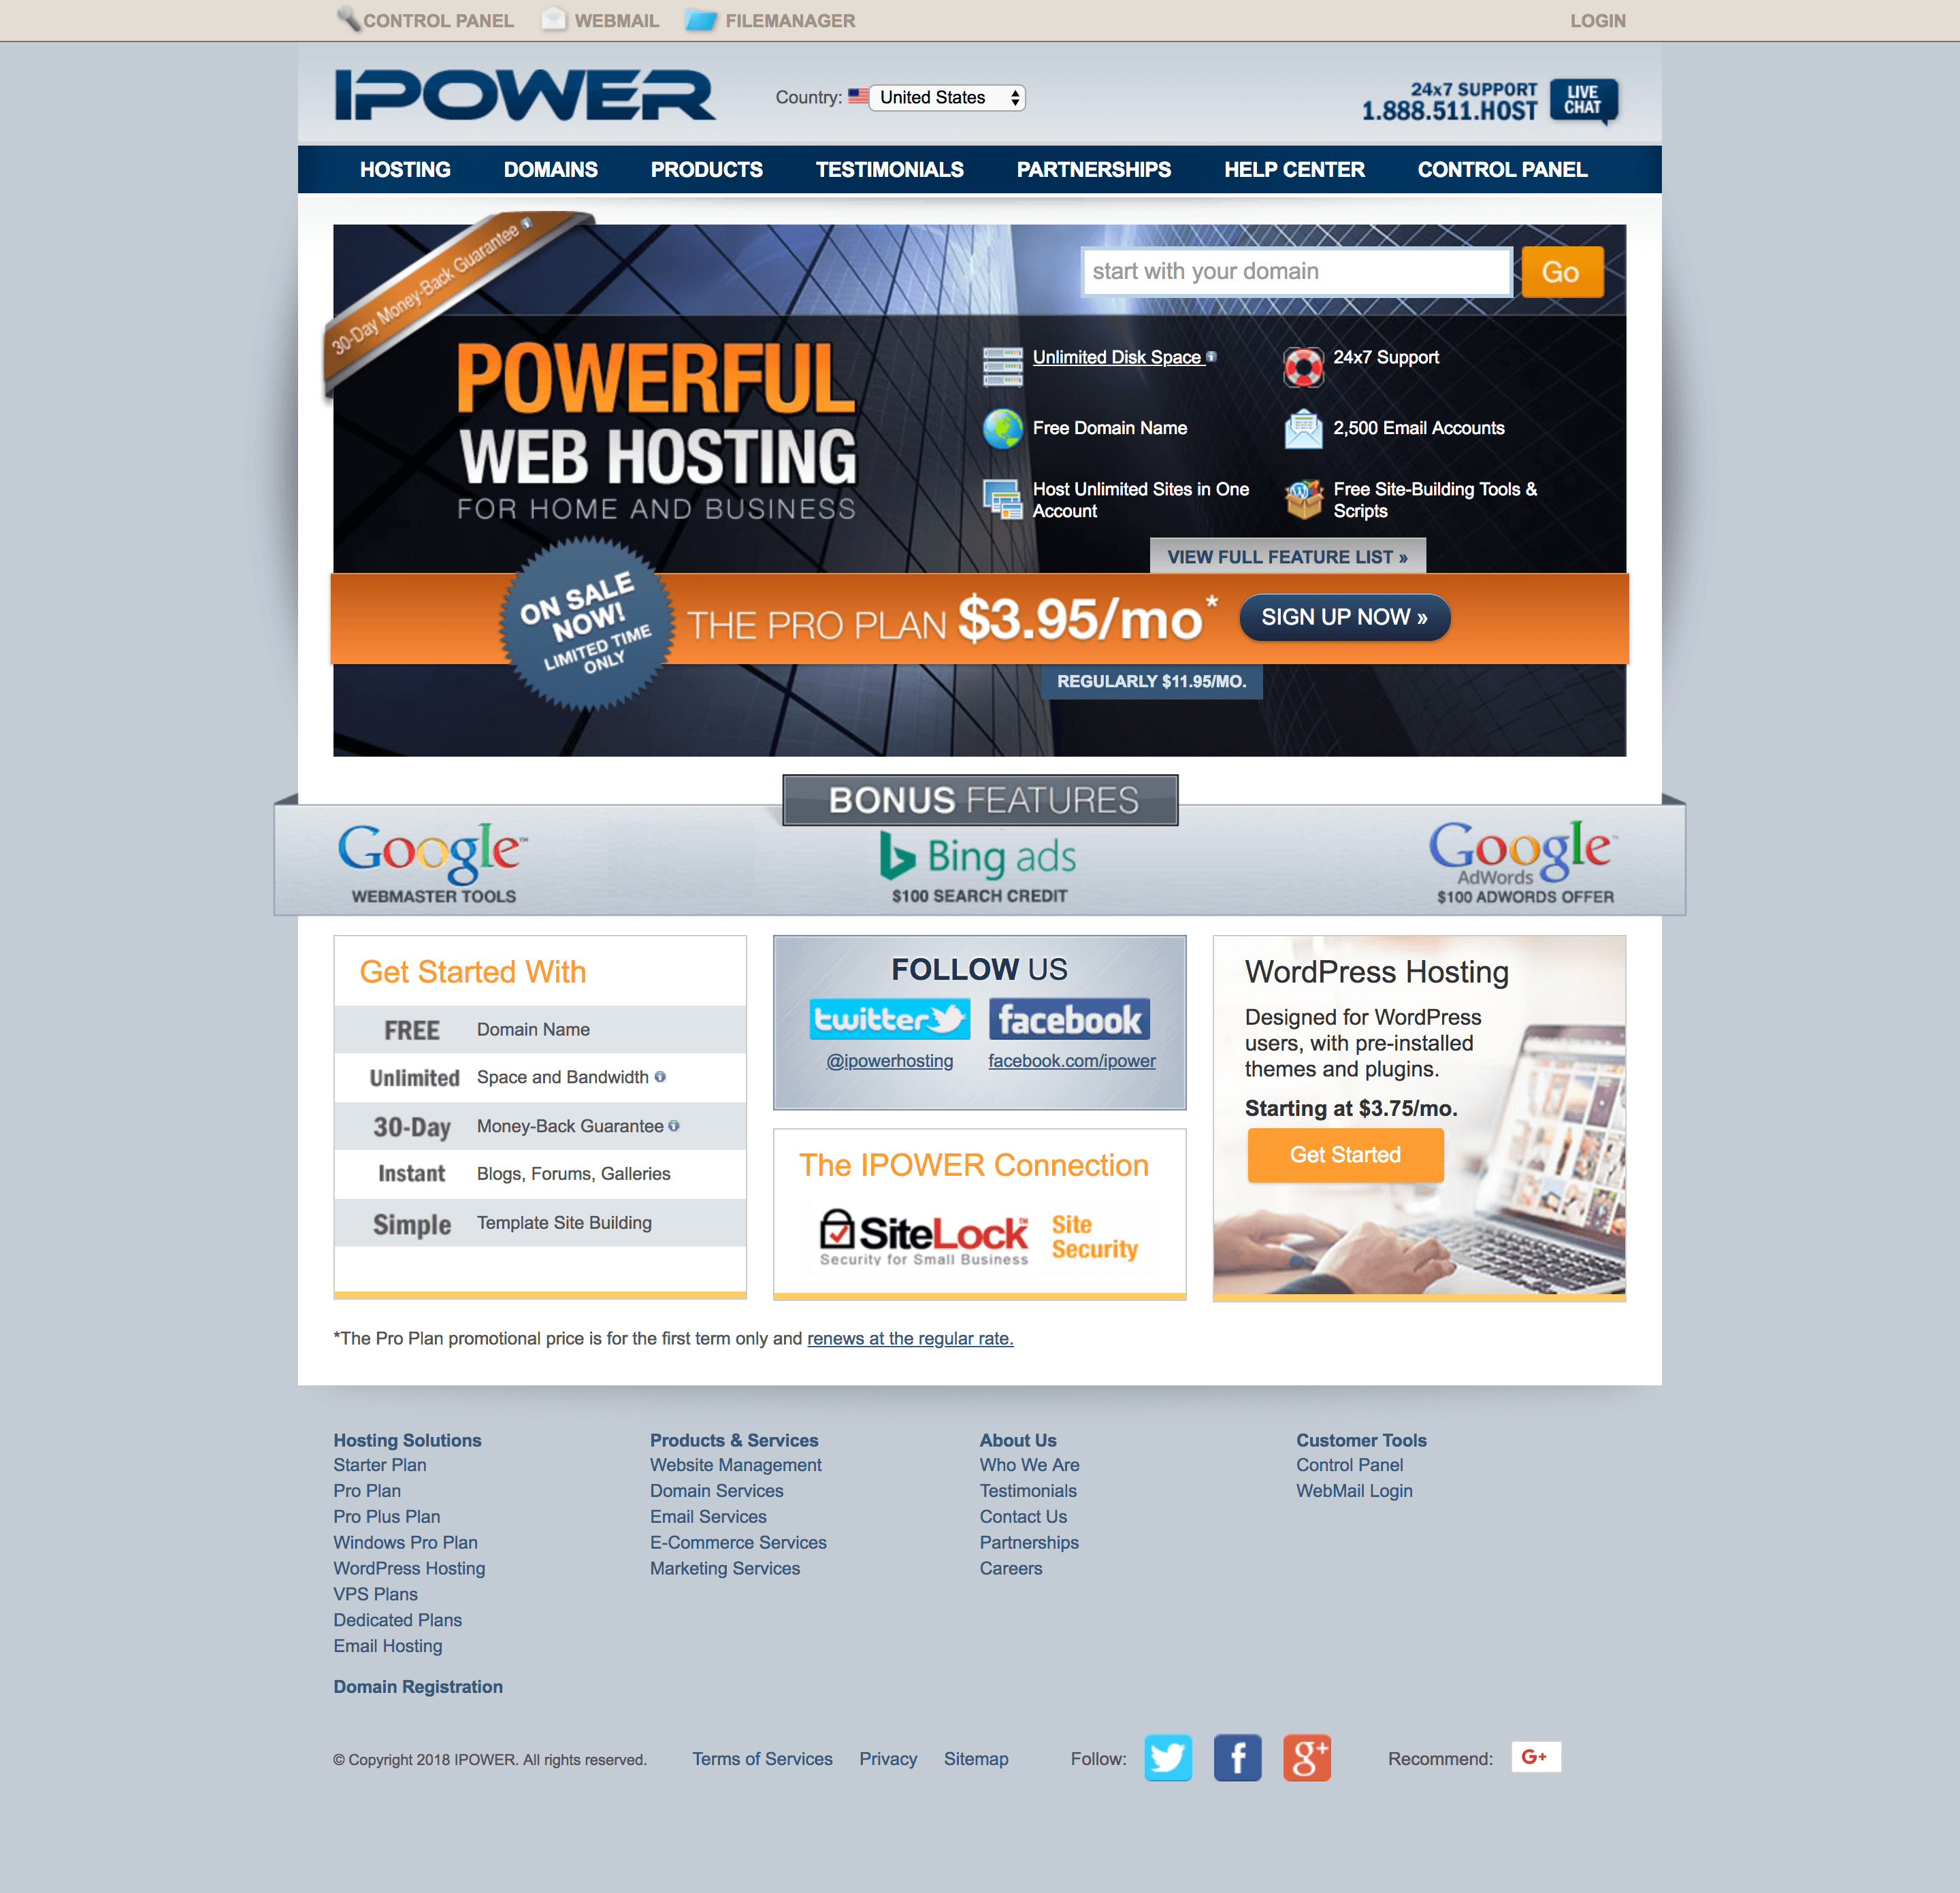 ipower homepage